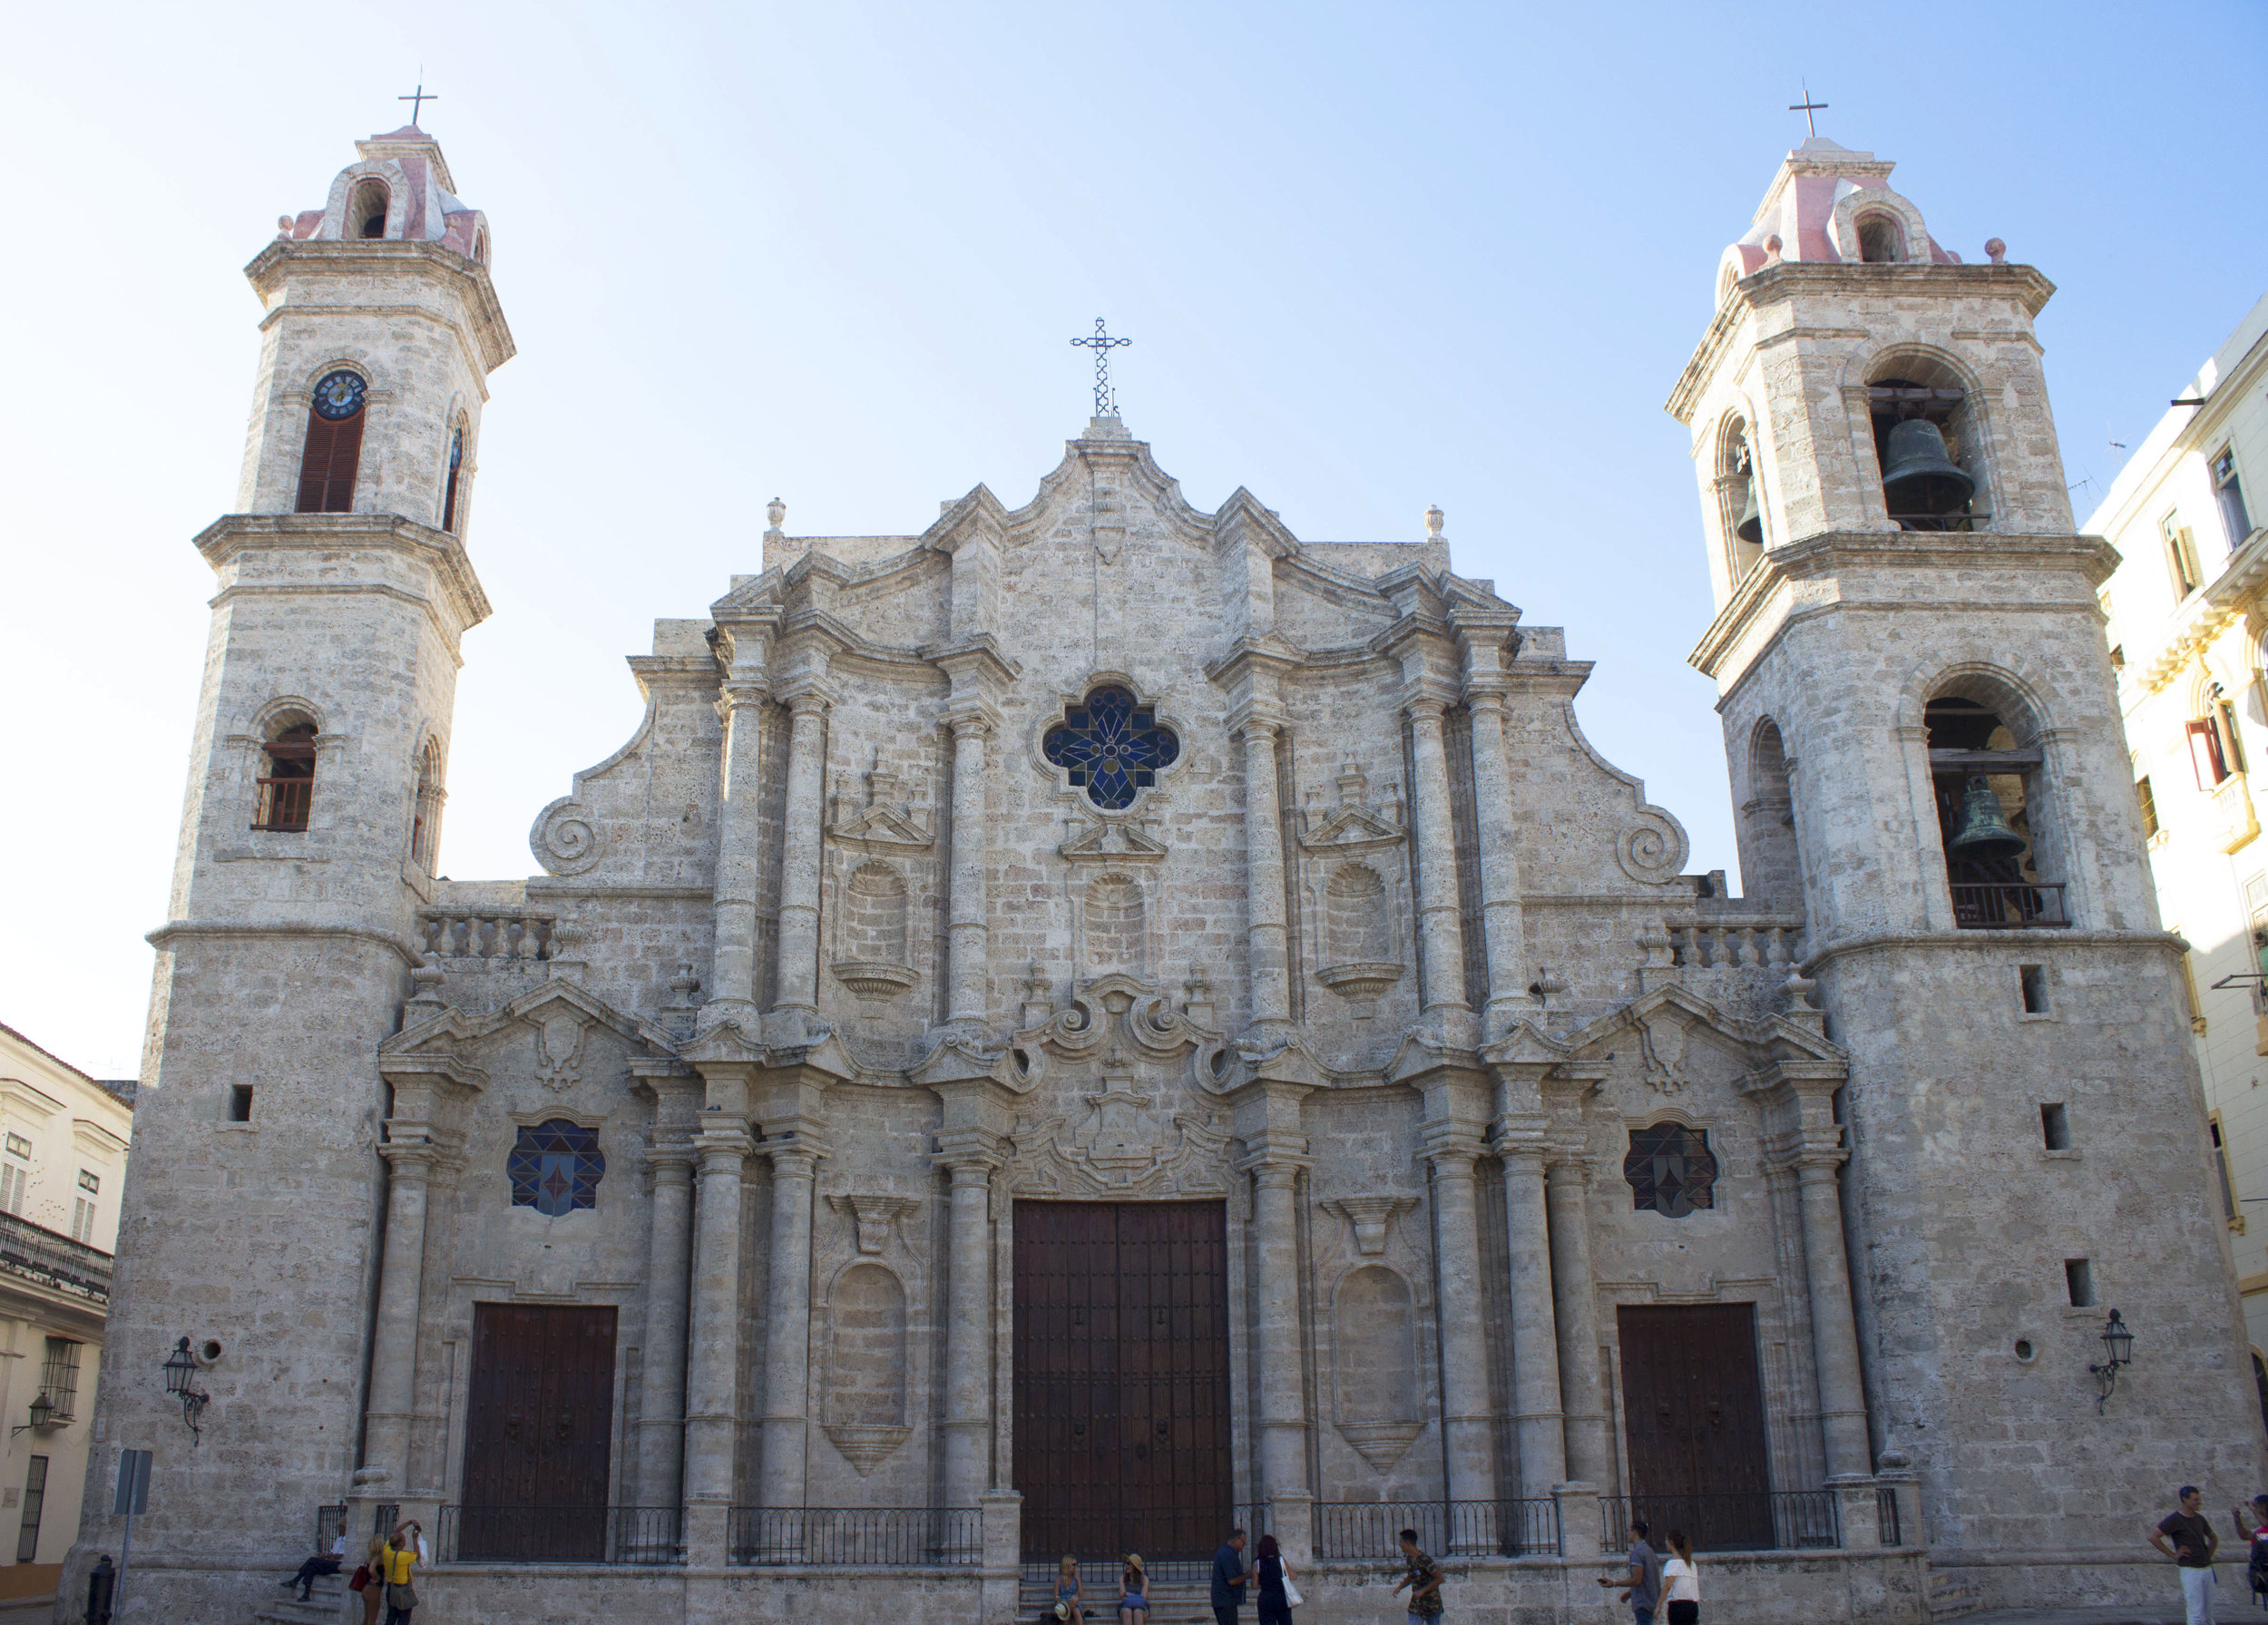 The Cathedral of San Cristóbal de la Habanal